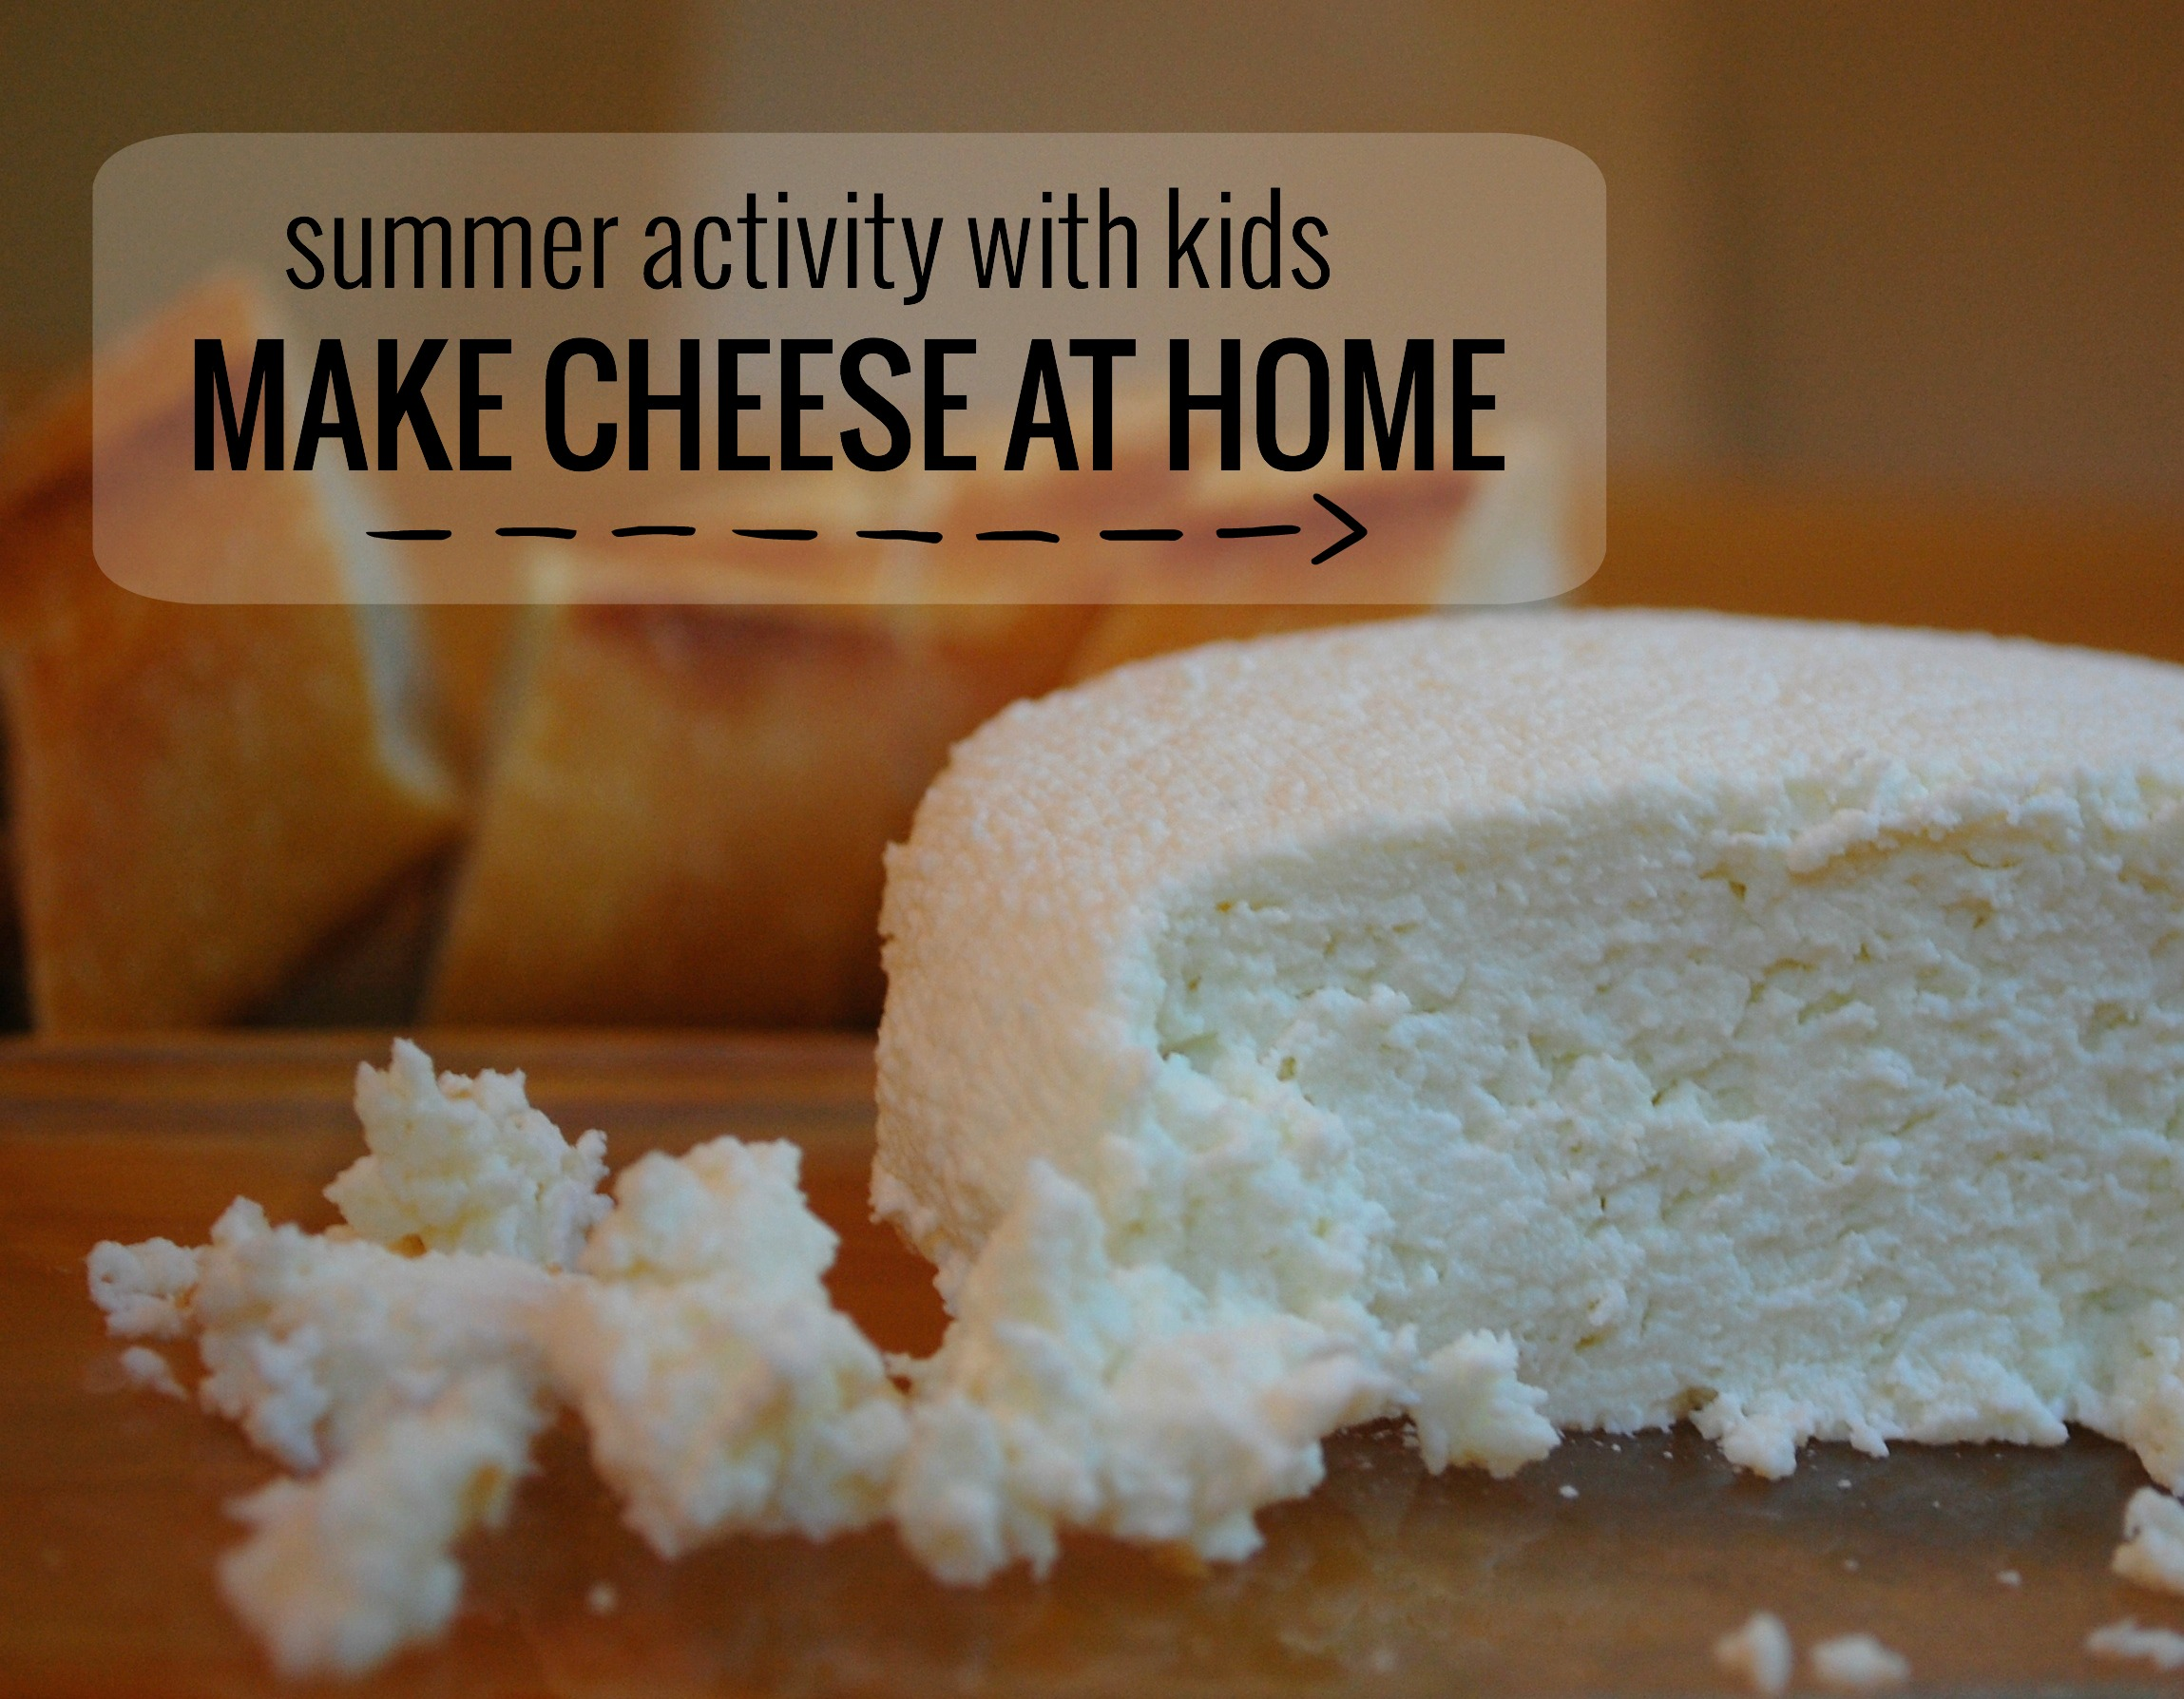 How to make cheese at home